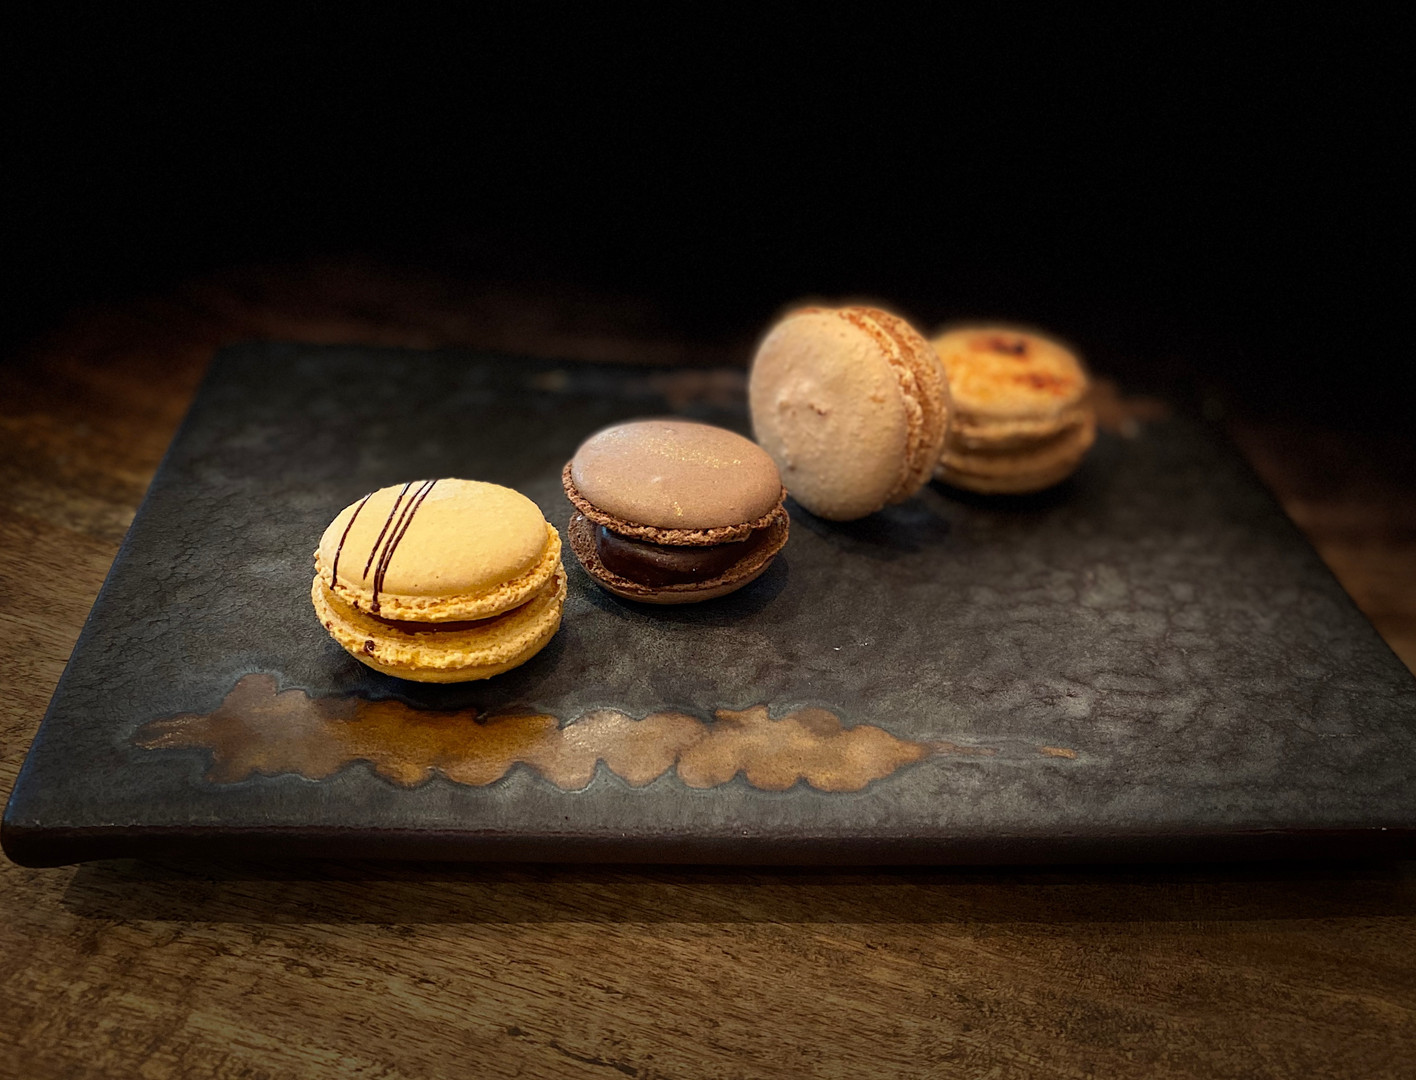 Macarons_Hotel_Wegner_The_Culinary_Art_Hotel